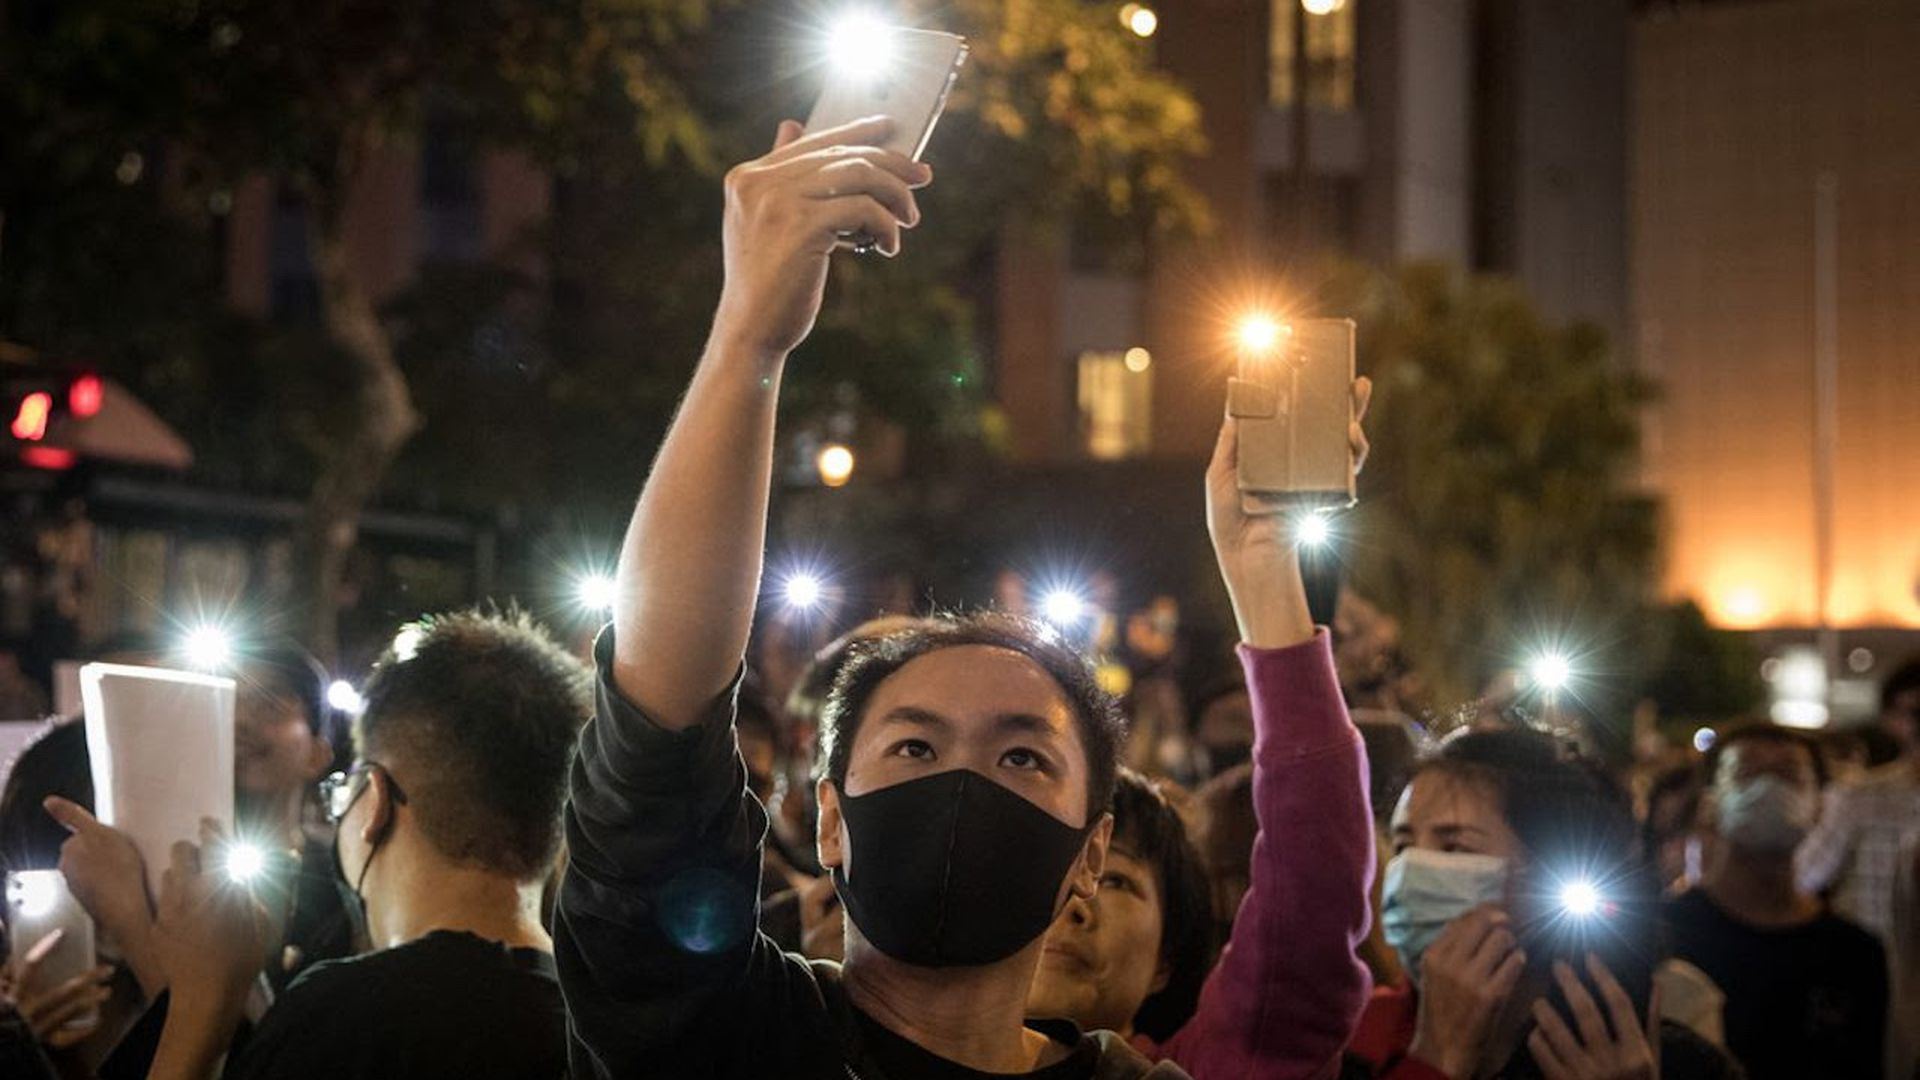 Anti-government protesters shine phone lights at police as they chant slogans in Hong Kong yesterday